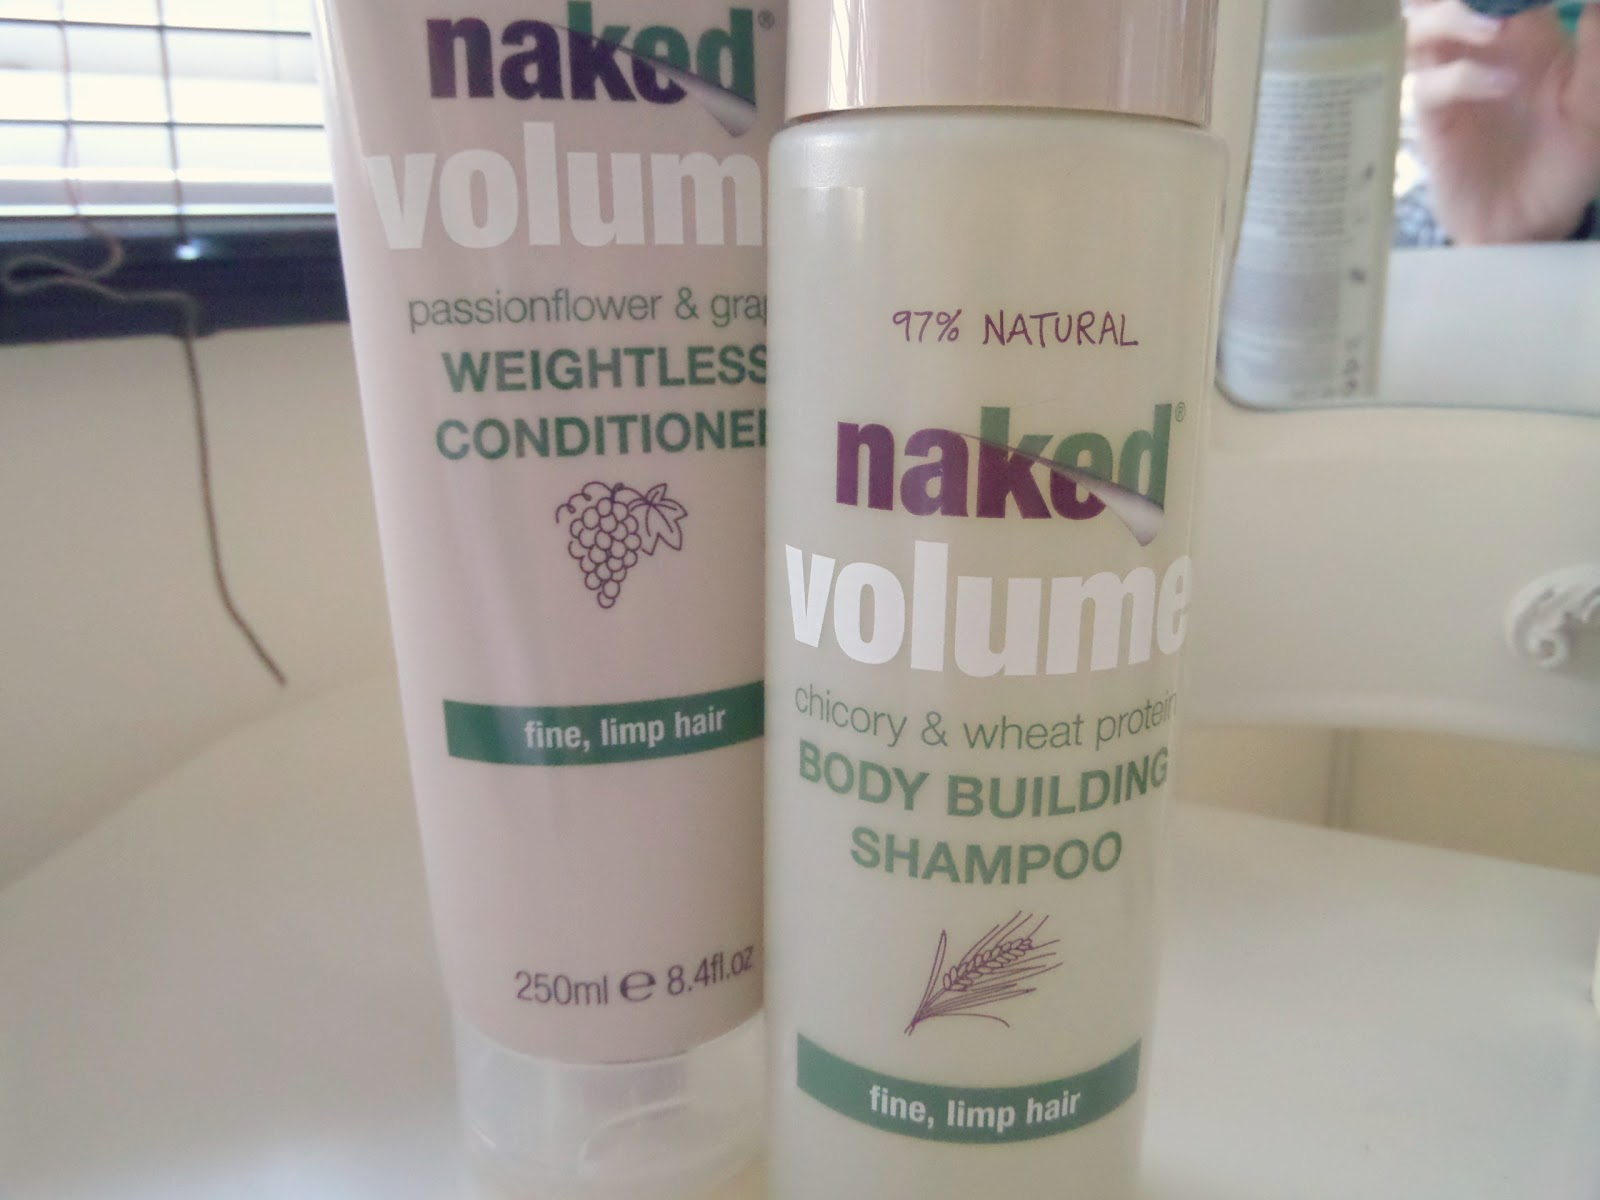 Naked Volume Body Building Shampoo & Weightless Conditioner